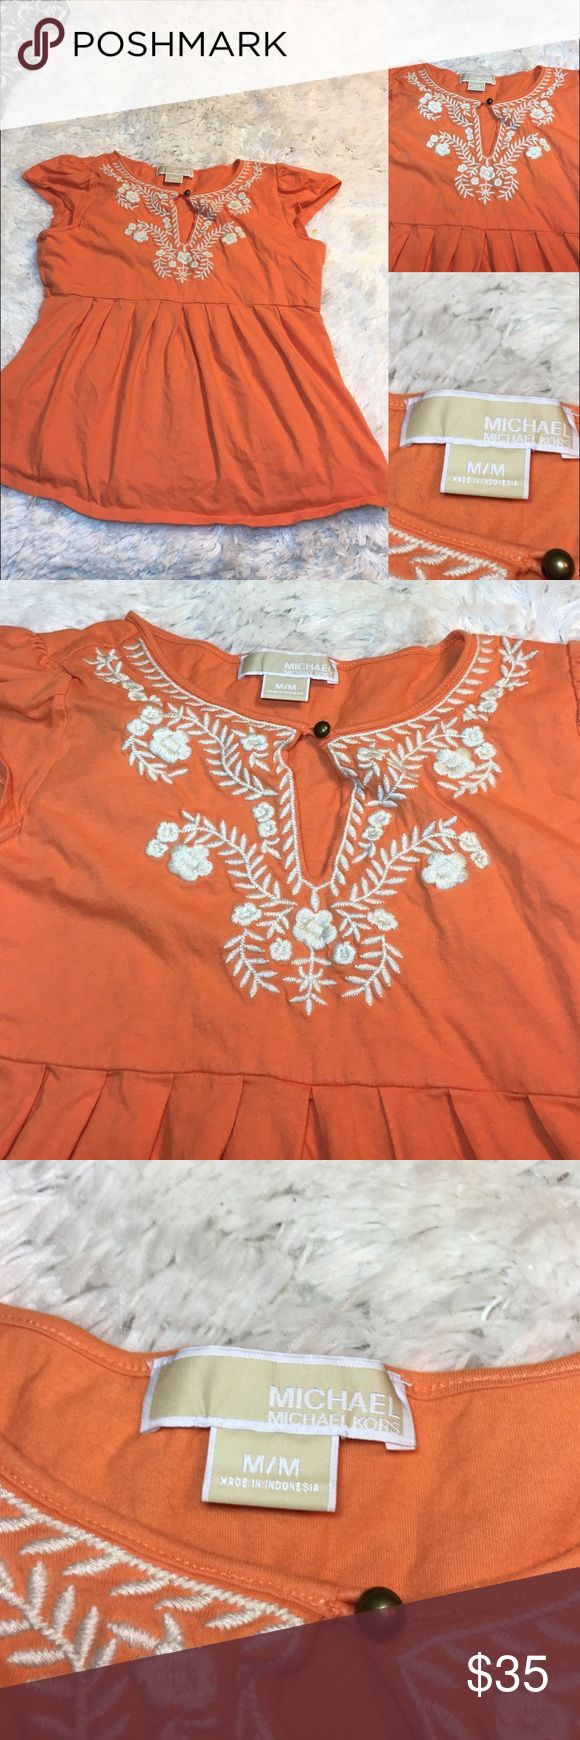 Michael Kors Orange Embroidered Top -Great condition!  -Pre loved item -I do not accept offers in the comments so please make all reasonable offers using the offer button only. :) -NO TRADES OR HOLDS 🚫 -I ship every Monday, Wednesday and Friday   💕Instagram- allisonsbeautyboutique 💕 Your purchase is going to help me graduate community college with as little debt as possible. Thank you! Michael Kors Tops Blouses